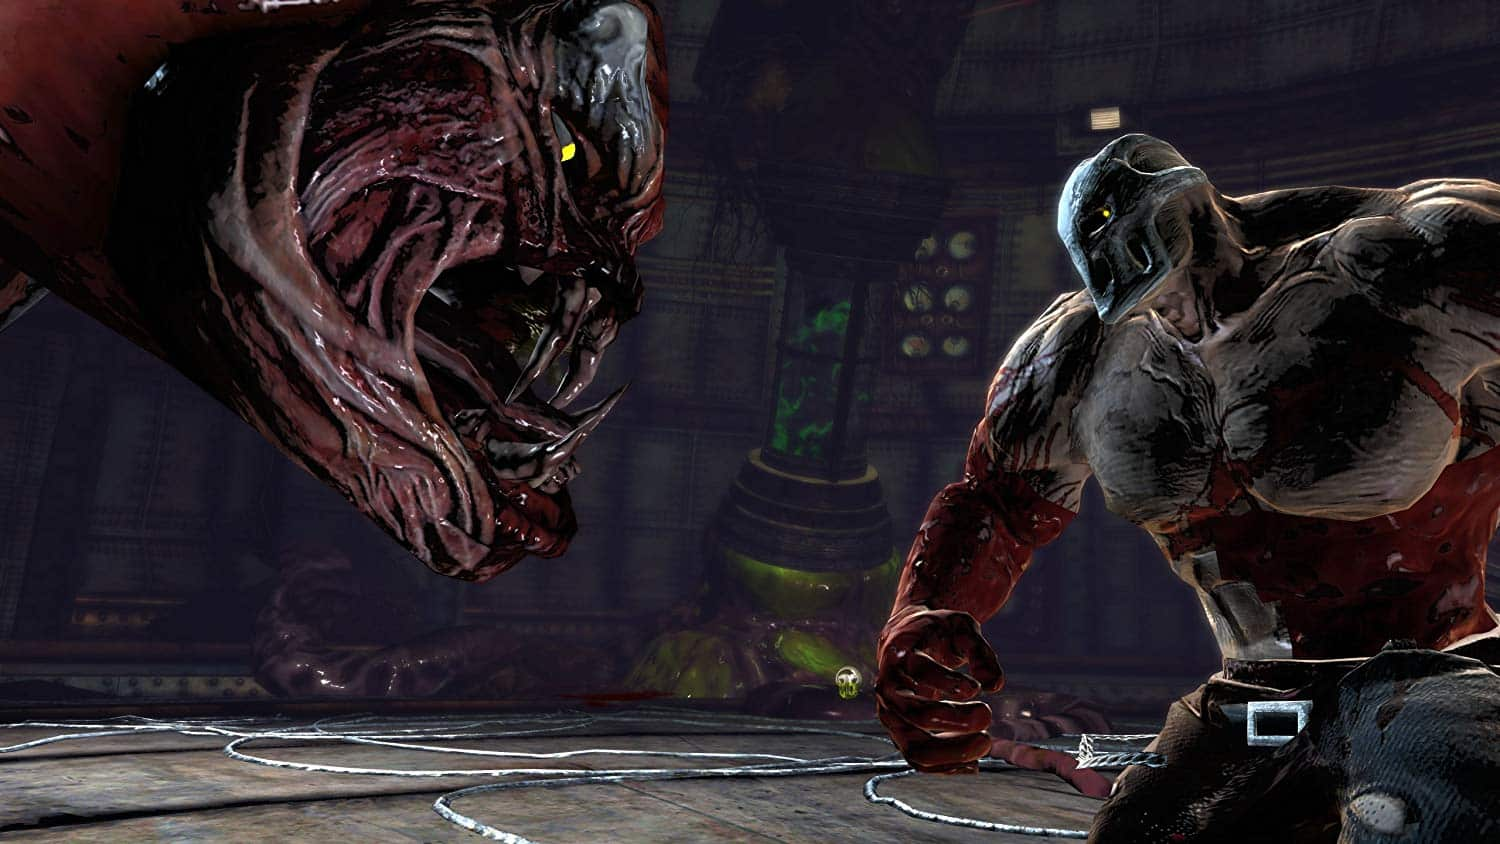 Splatterhouse 2010 Bandai Namco is enjoyable grindhouse gore and violence with heart and enjoyable characters like Terror Mask